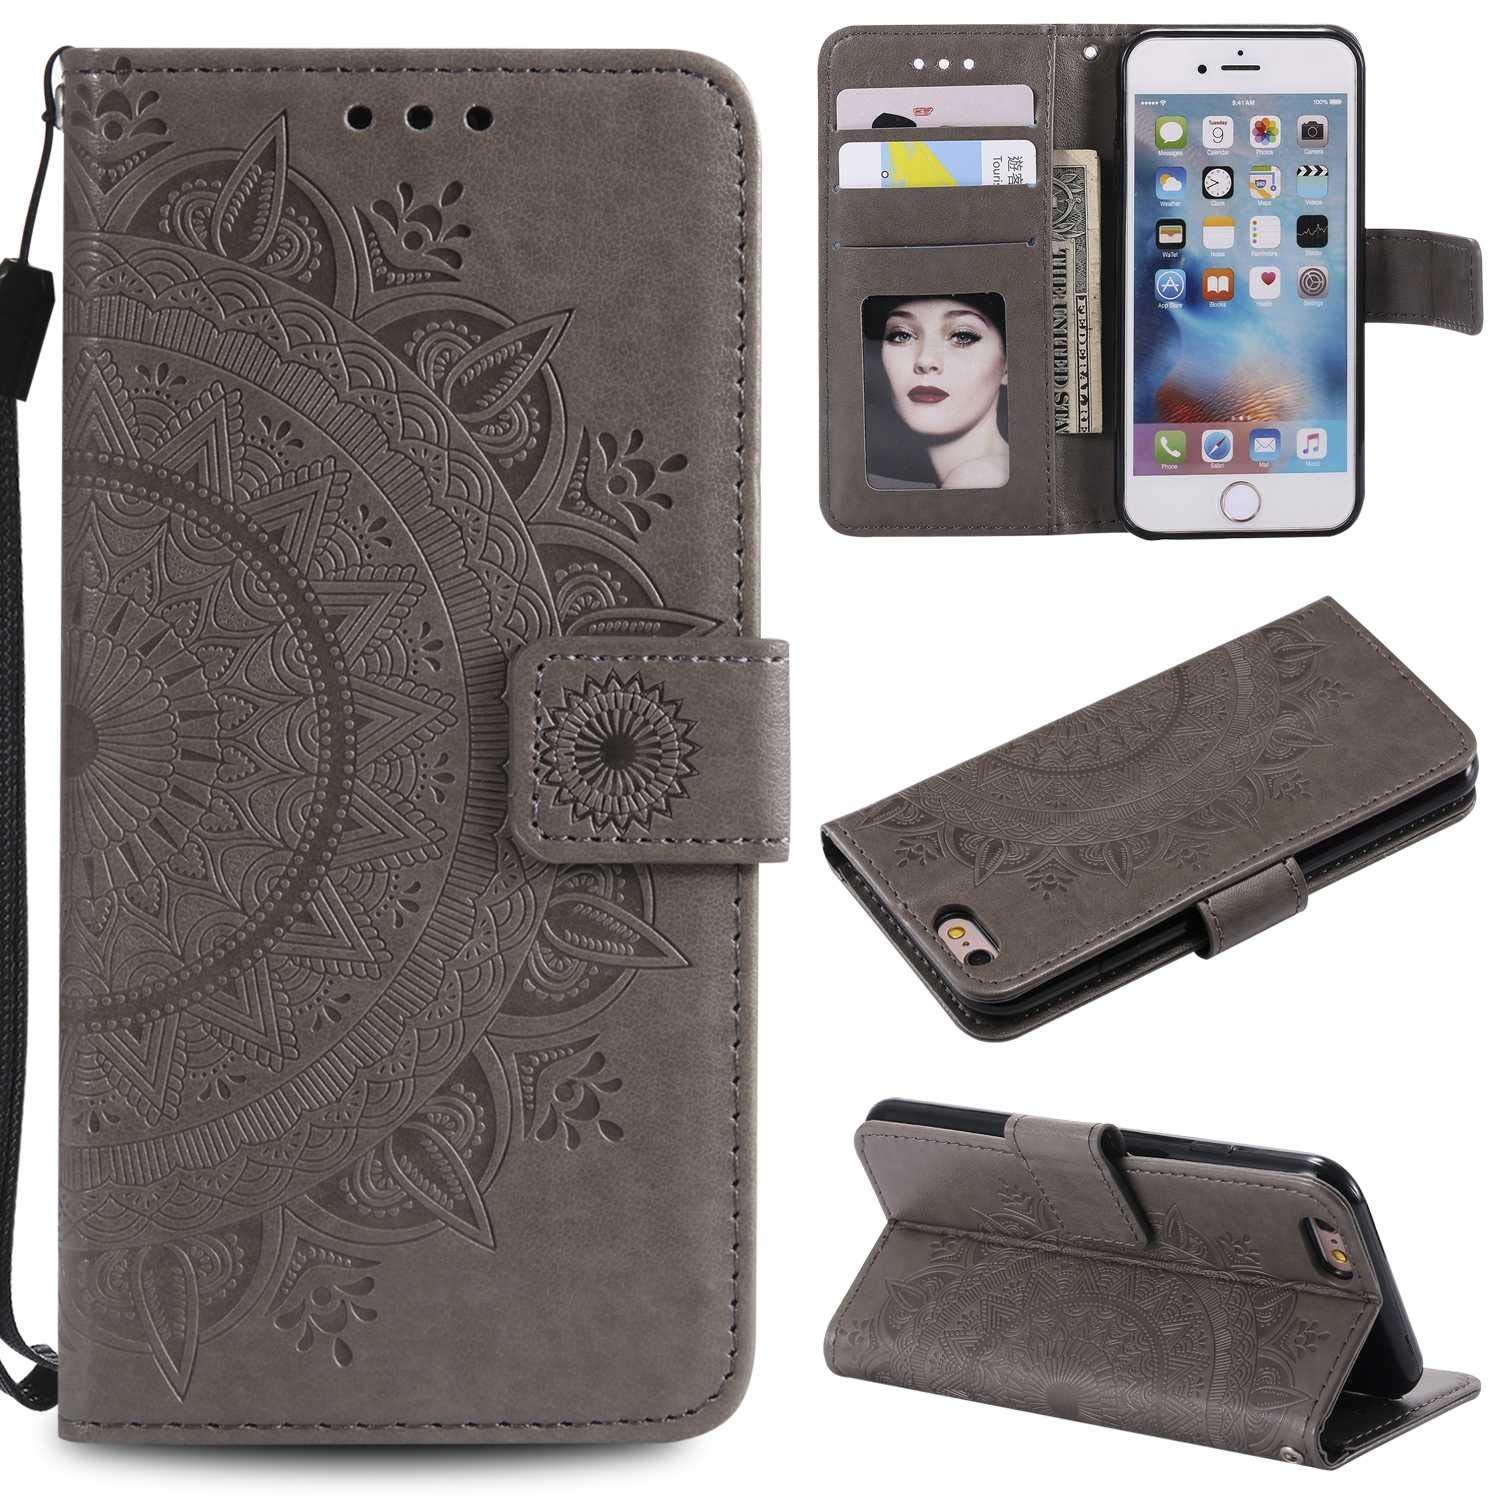 Case iPhone X/Xs, Bear Village PU Leather Embossed Design Case with Card Holder and ID Slot, Wallet Flip Stand Cover for Apple iPhone X/iPhone Xs (#6 Gray)